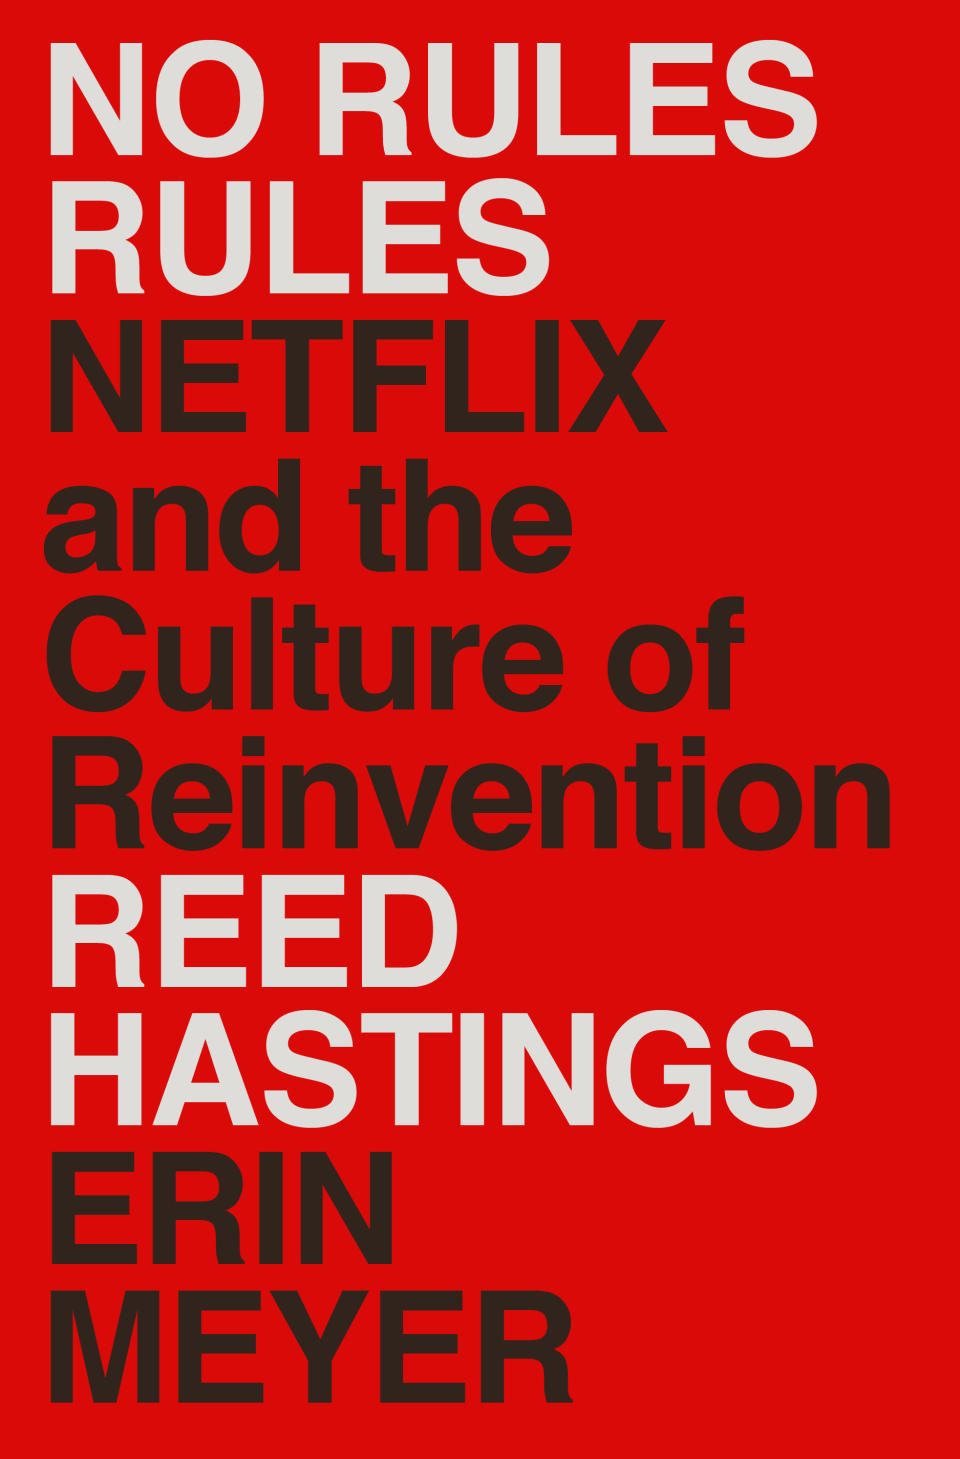 """Netflix co-founder and co-CEO Reed Hastings and co-author Erin Meyer detail the company's unorthodox management style in the new book """"No Rules Rules: Netflix and the Culture of Reinvention."""""""